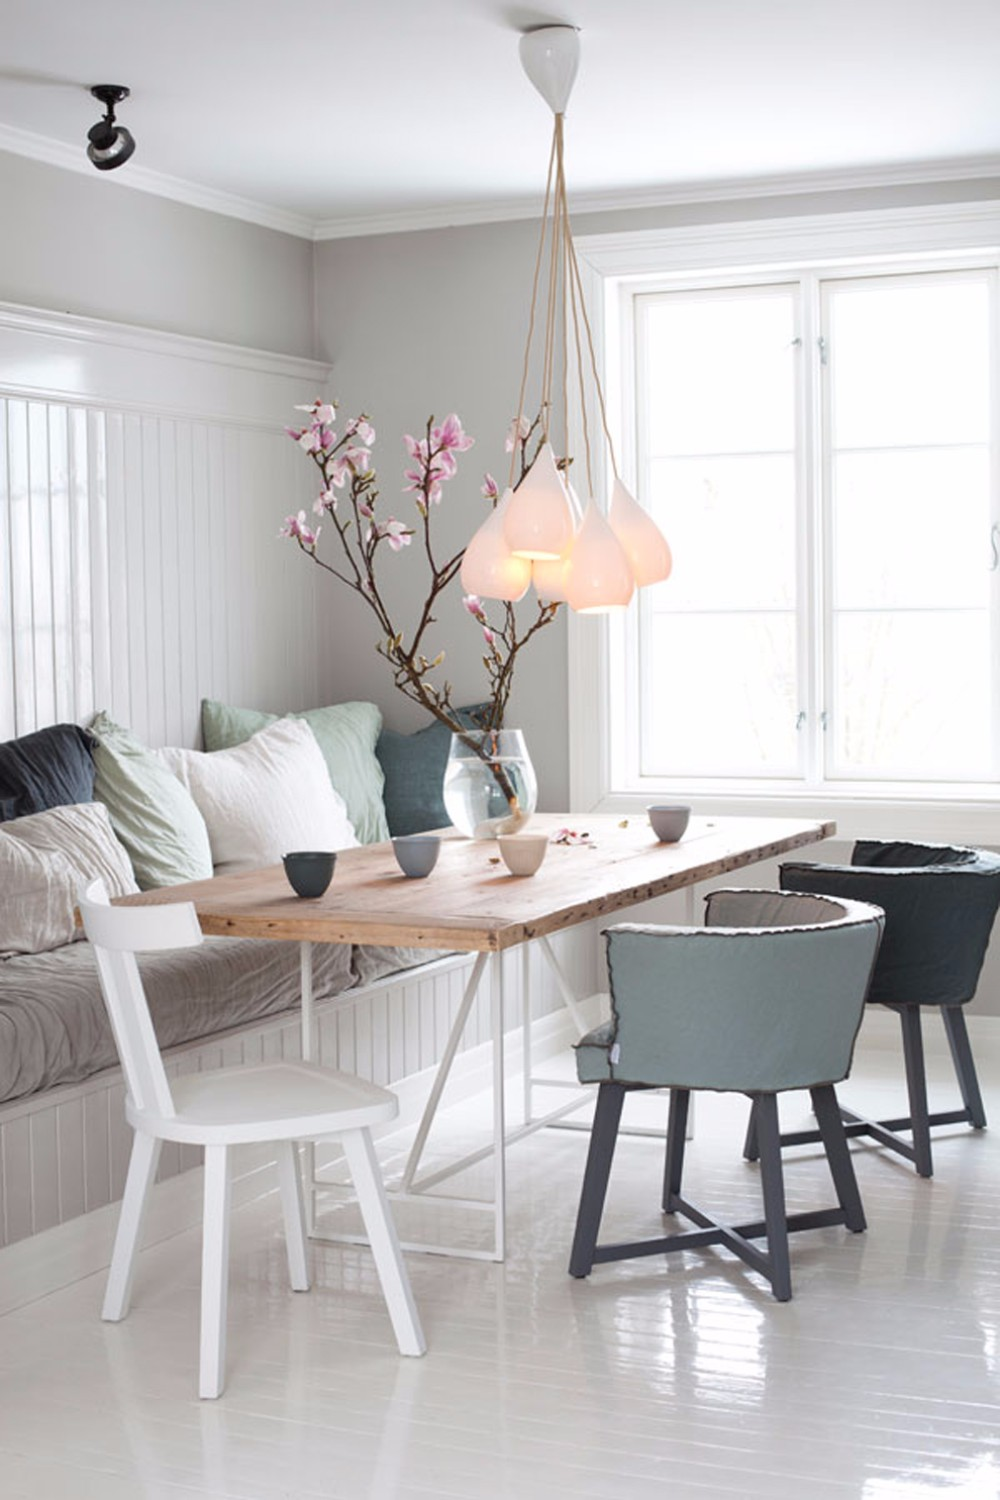 gray Gray and Wood: A Match Made in Design Heaven for your Dining Room ch CL 26